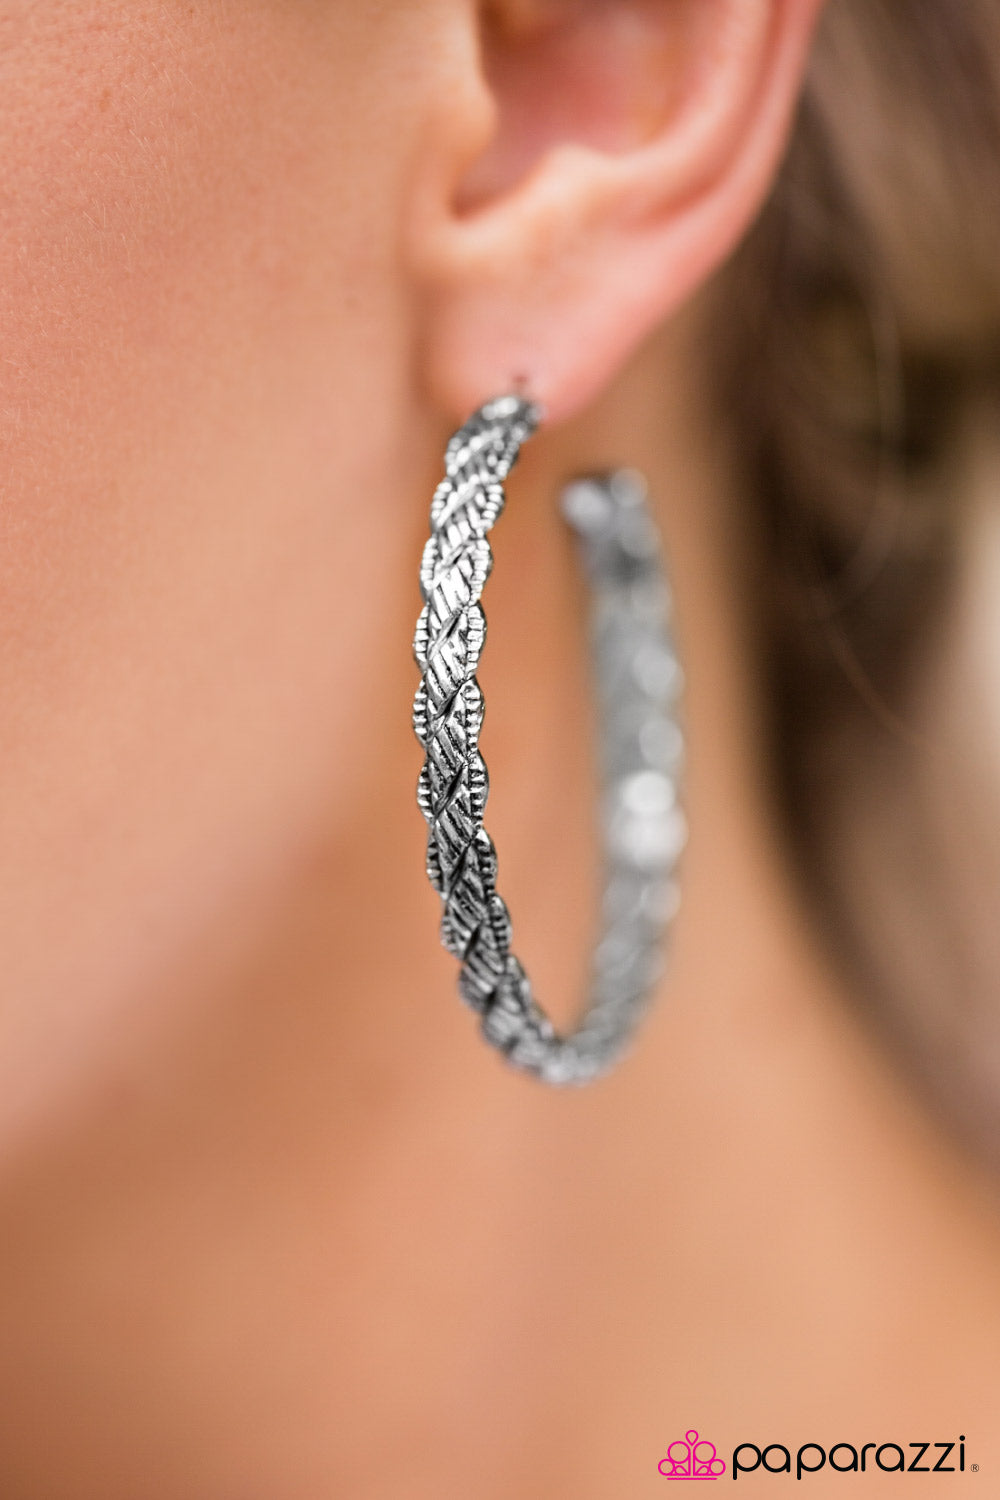 Thrown For A HOOP - Silver - Paparazzi earrings